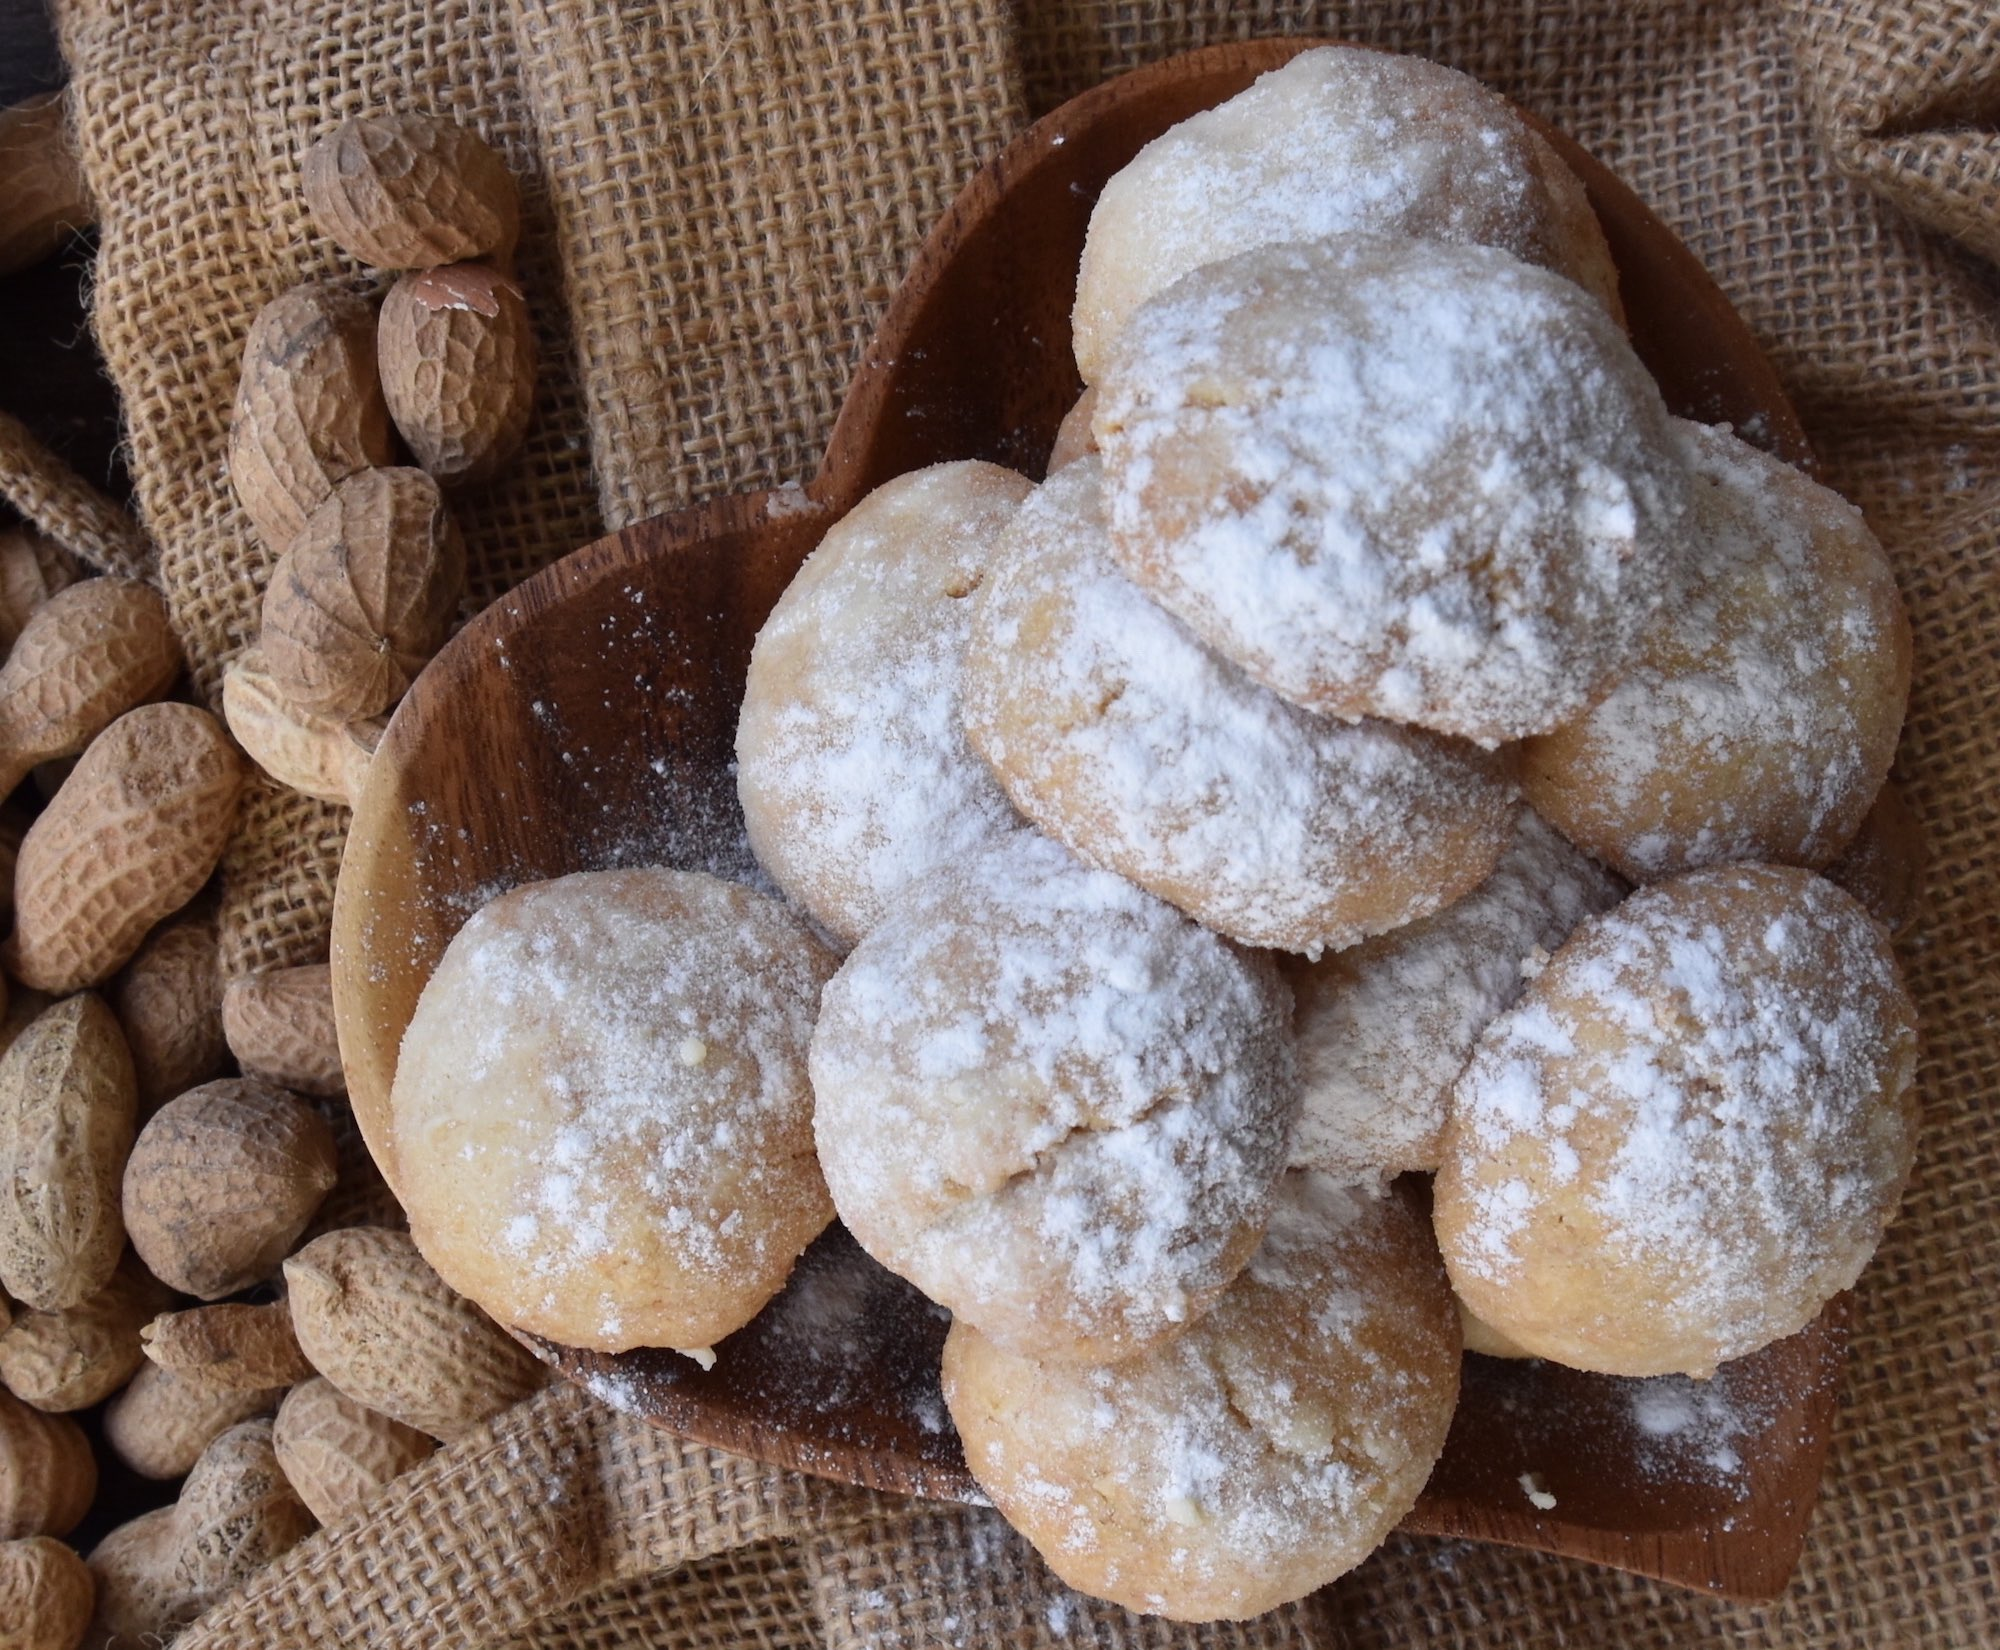 Mtedza cookie from Malawi - cookie companion